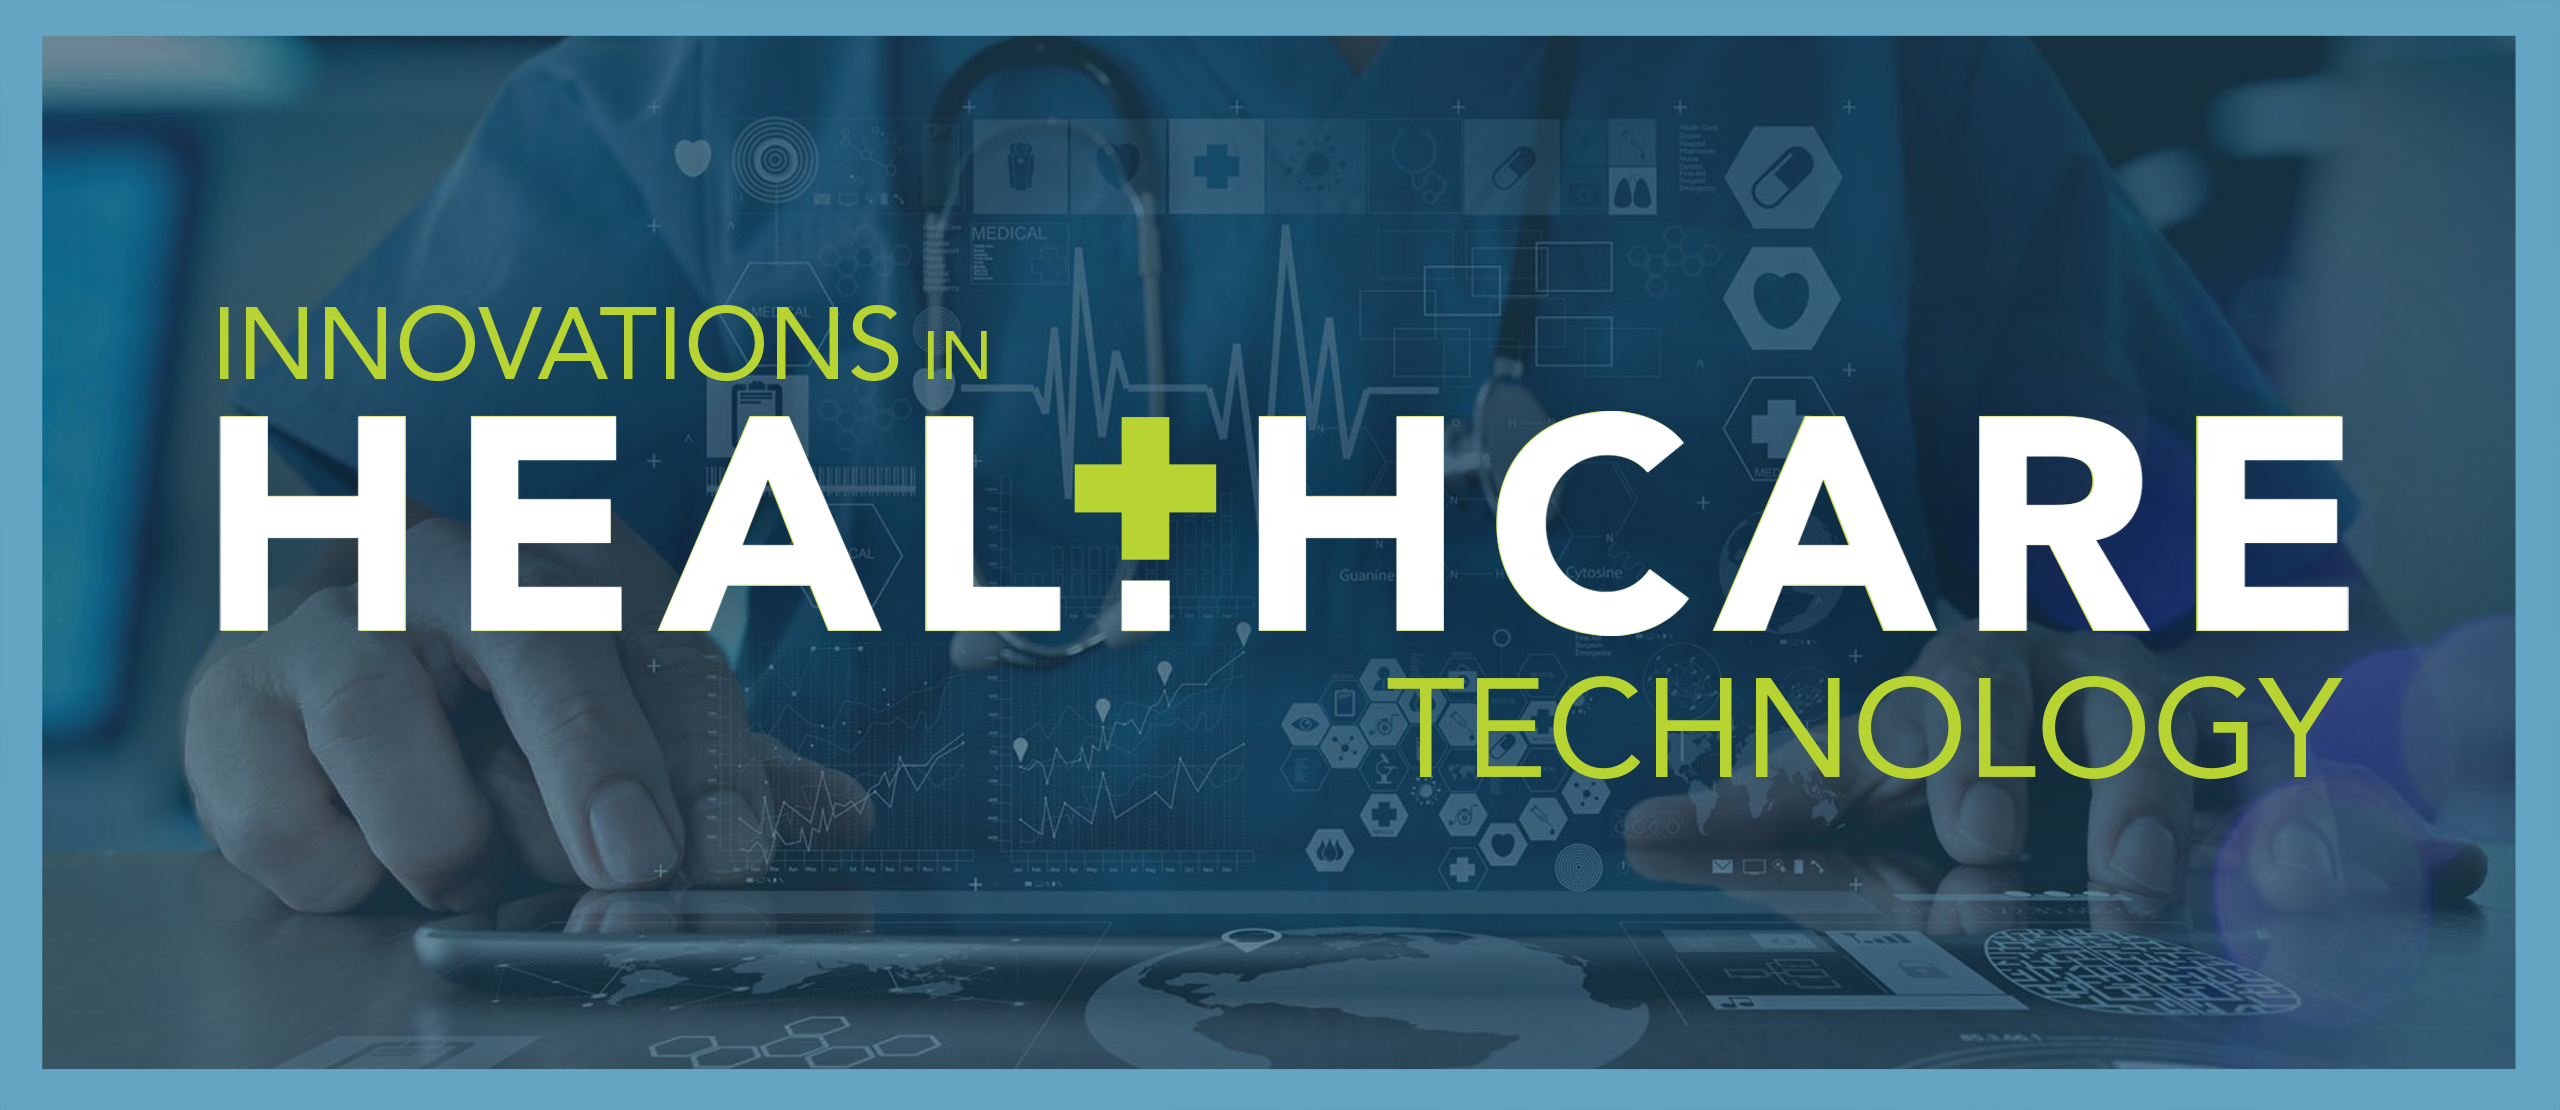 A banner image for the Innovations in Health Care Technology conference includes the event name atop a faded abstract image of a person working at a computer.